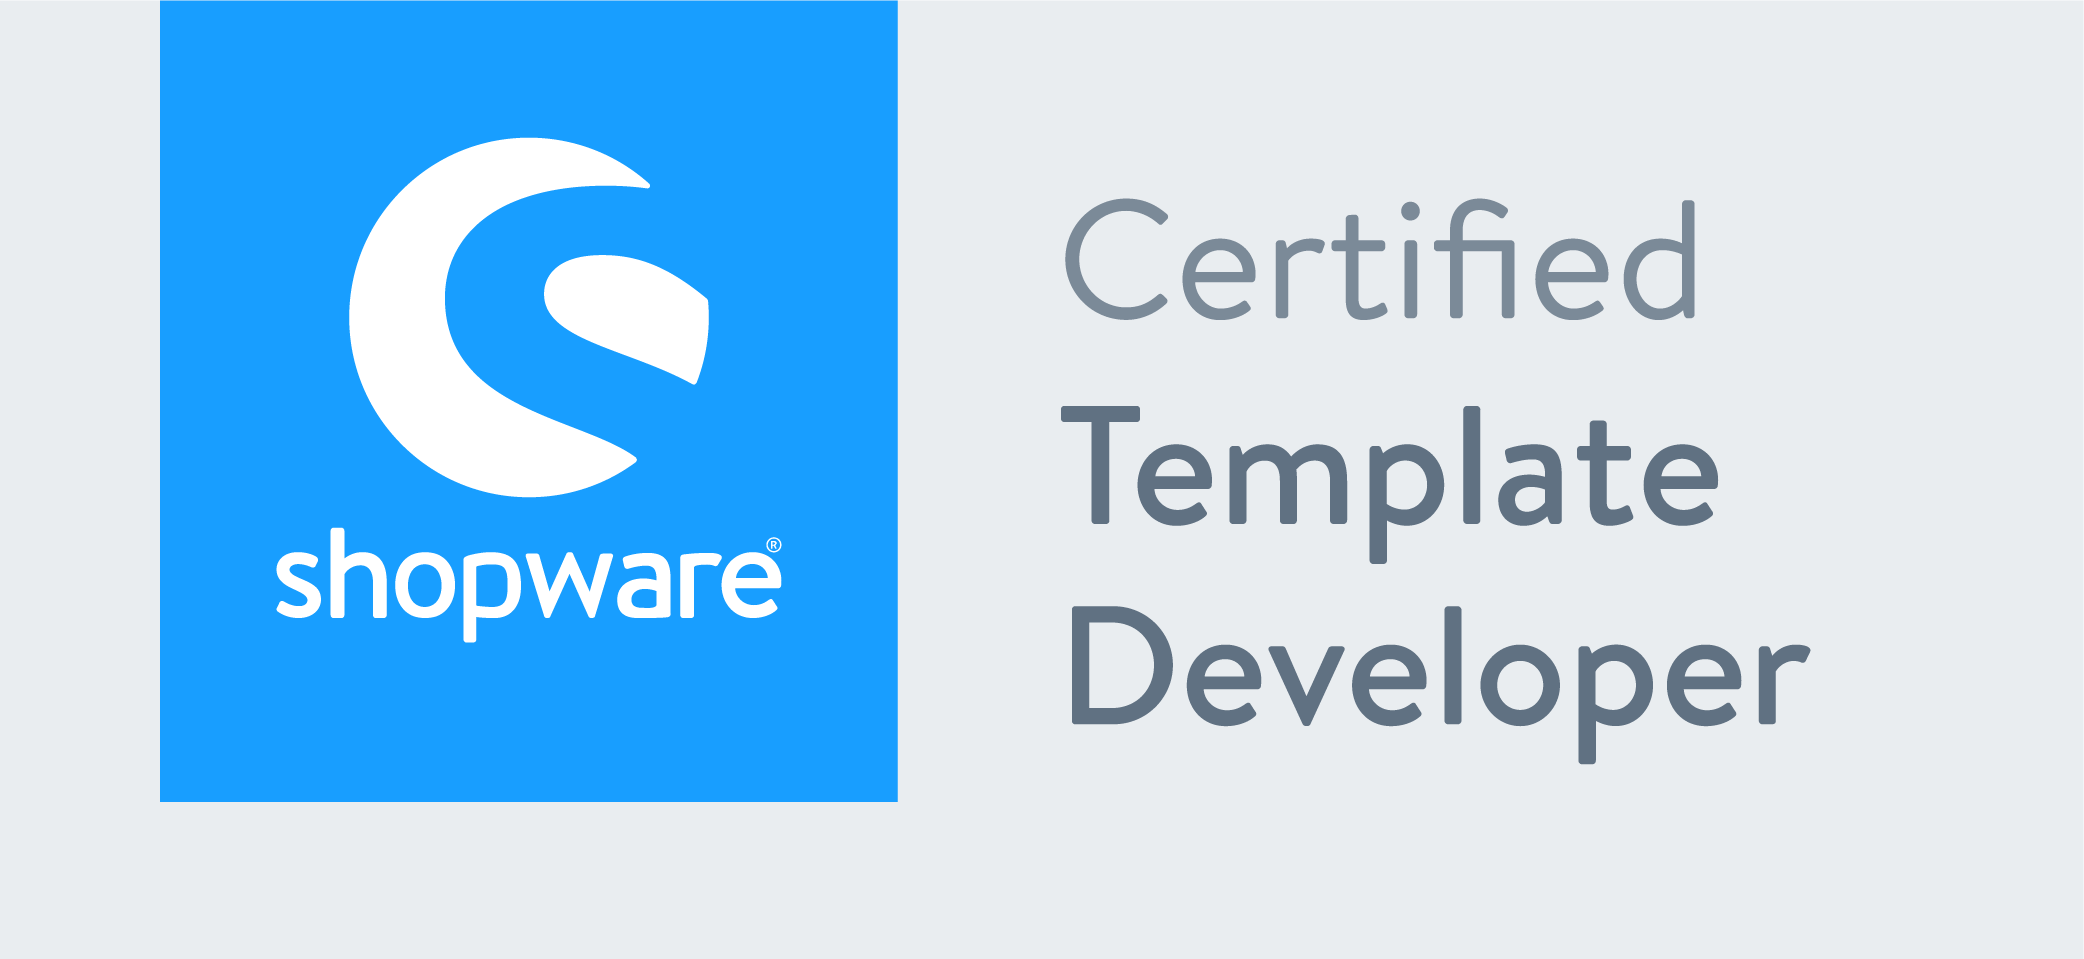 NetzKombyse ist SHOPWARE Certified Template Developer